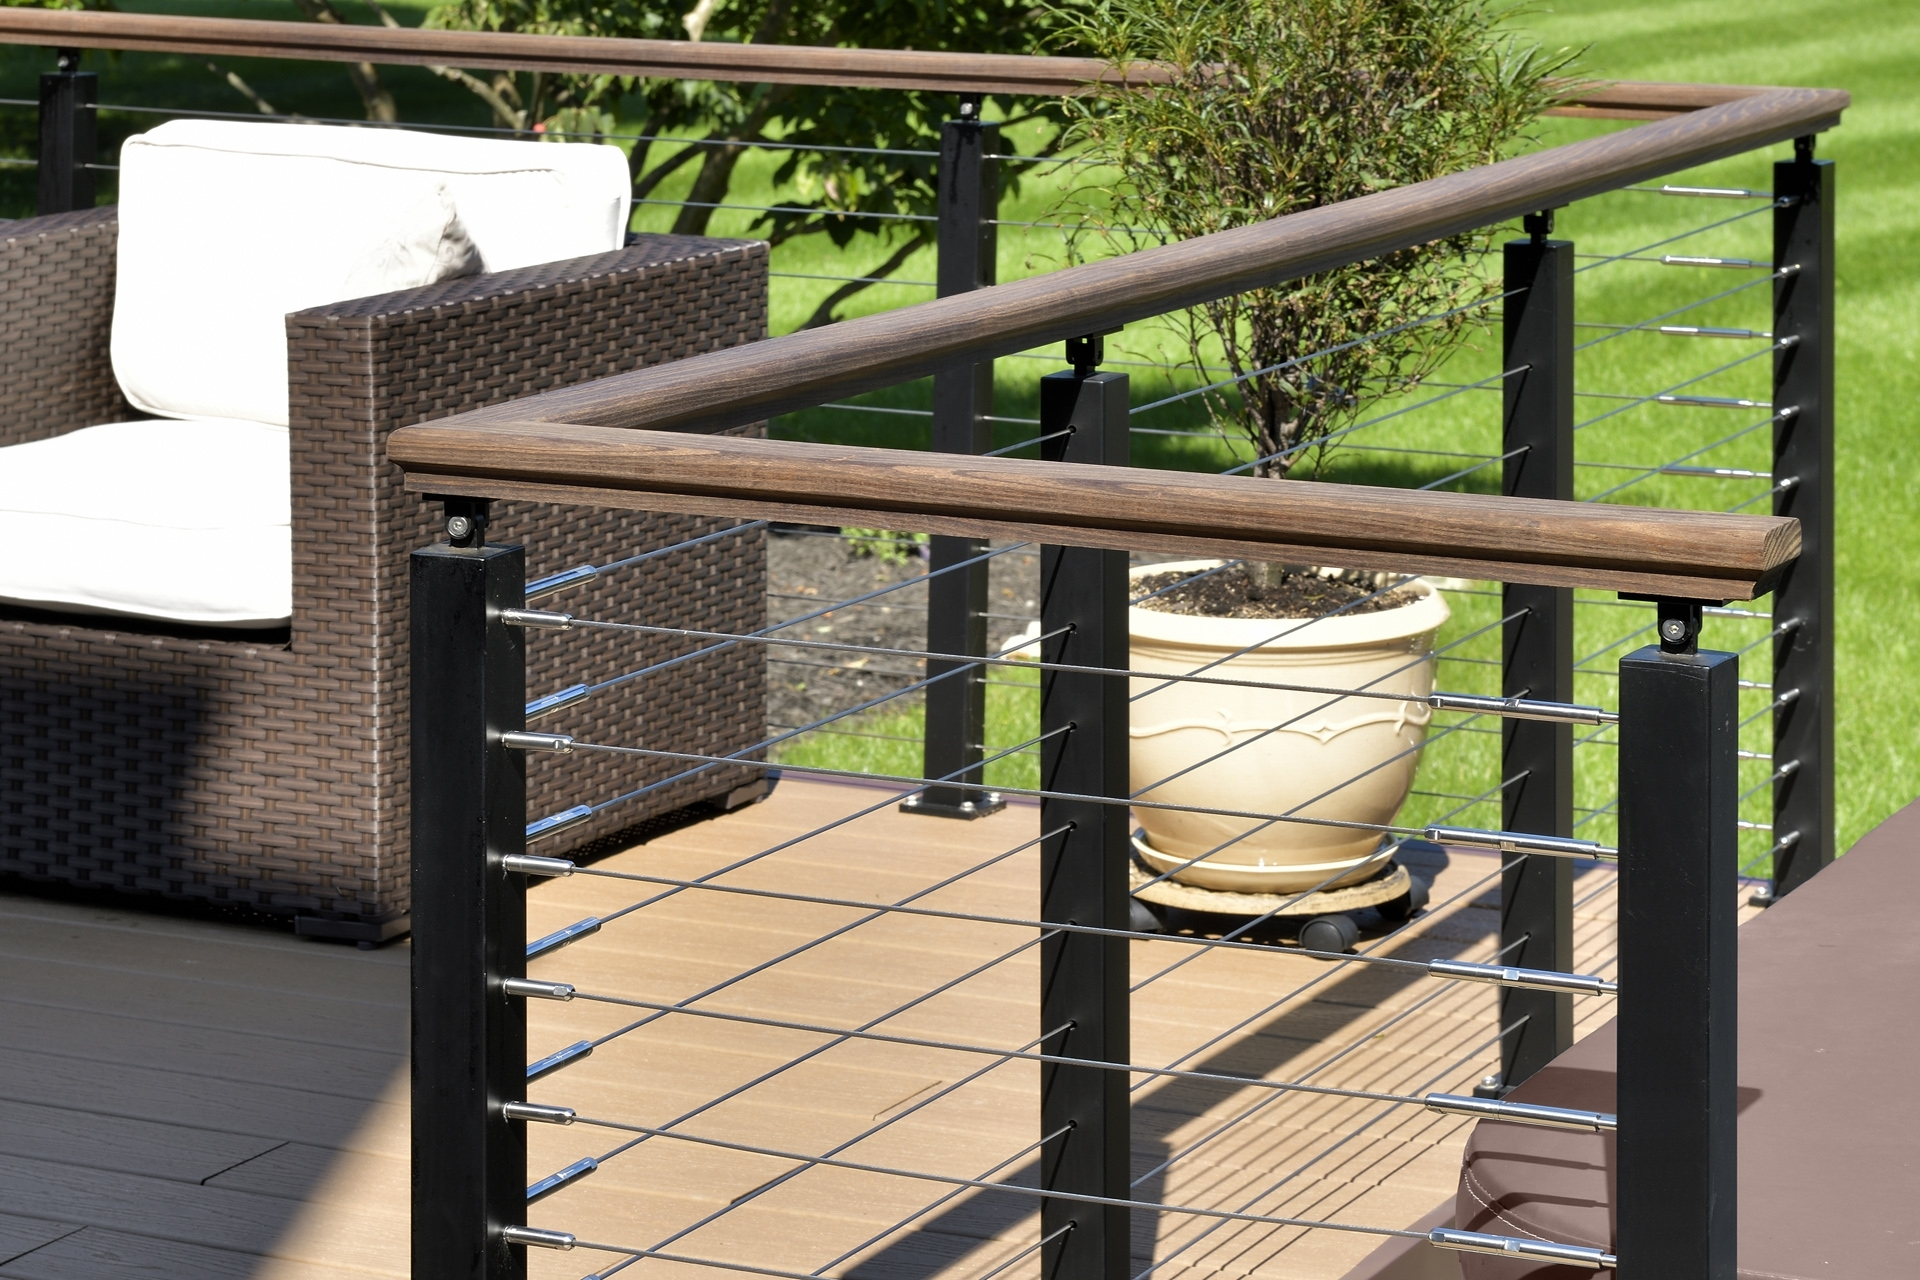 Stair Systems Stairs Stair Parts Newels Balusters And | Wrought Iron Stair Railing Near Me | Steel | Spindles | Wood | Front Porch Railings | Stair Spindles